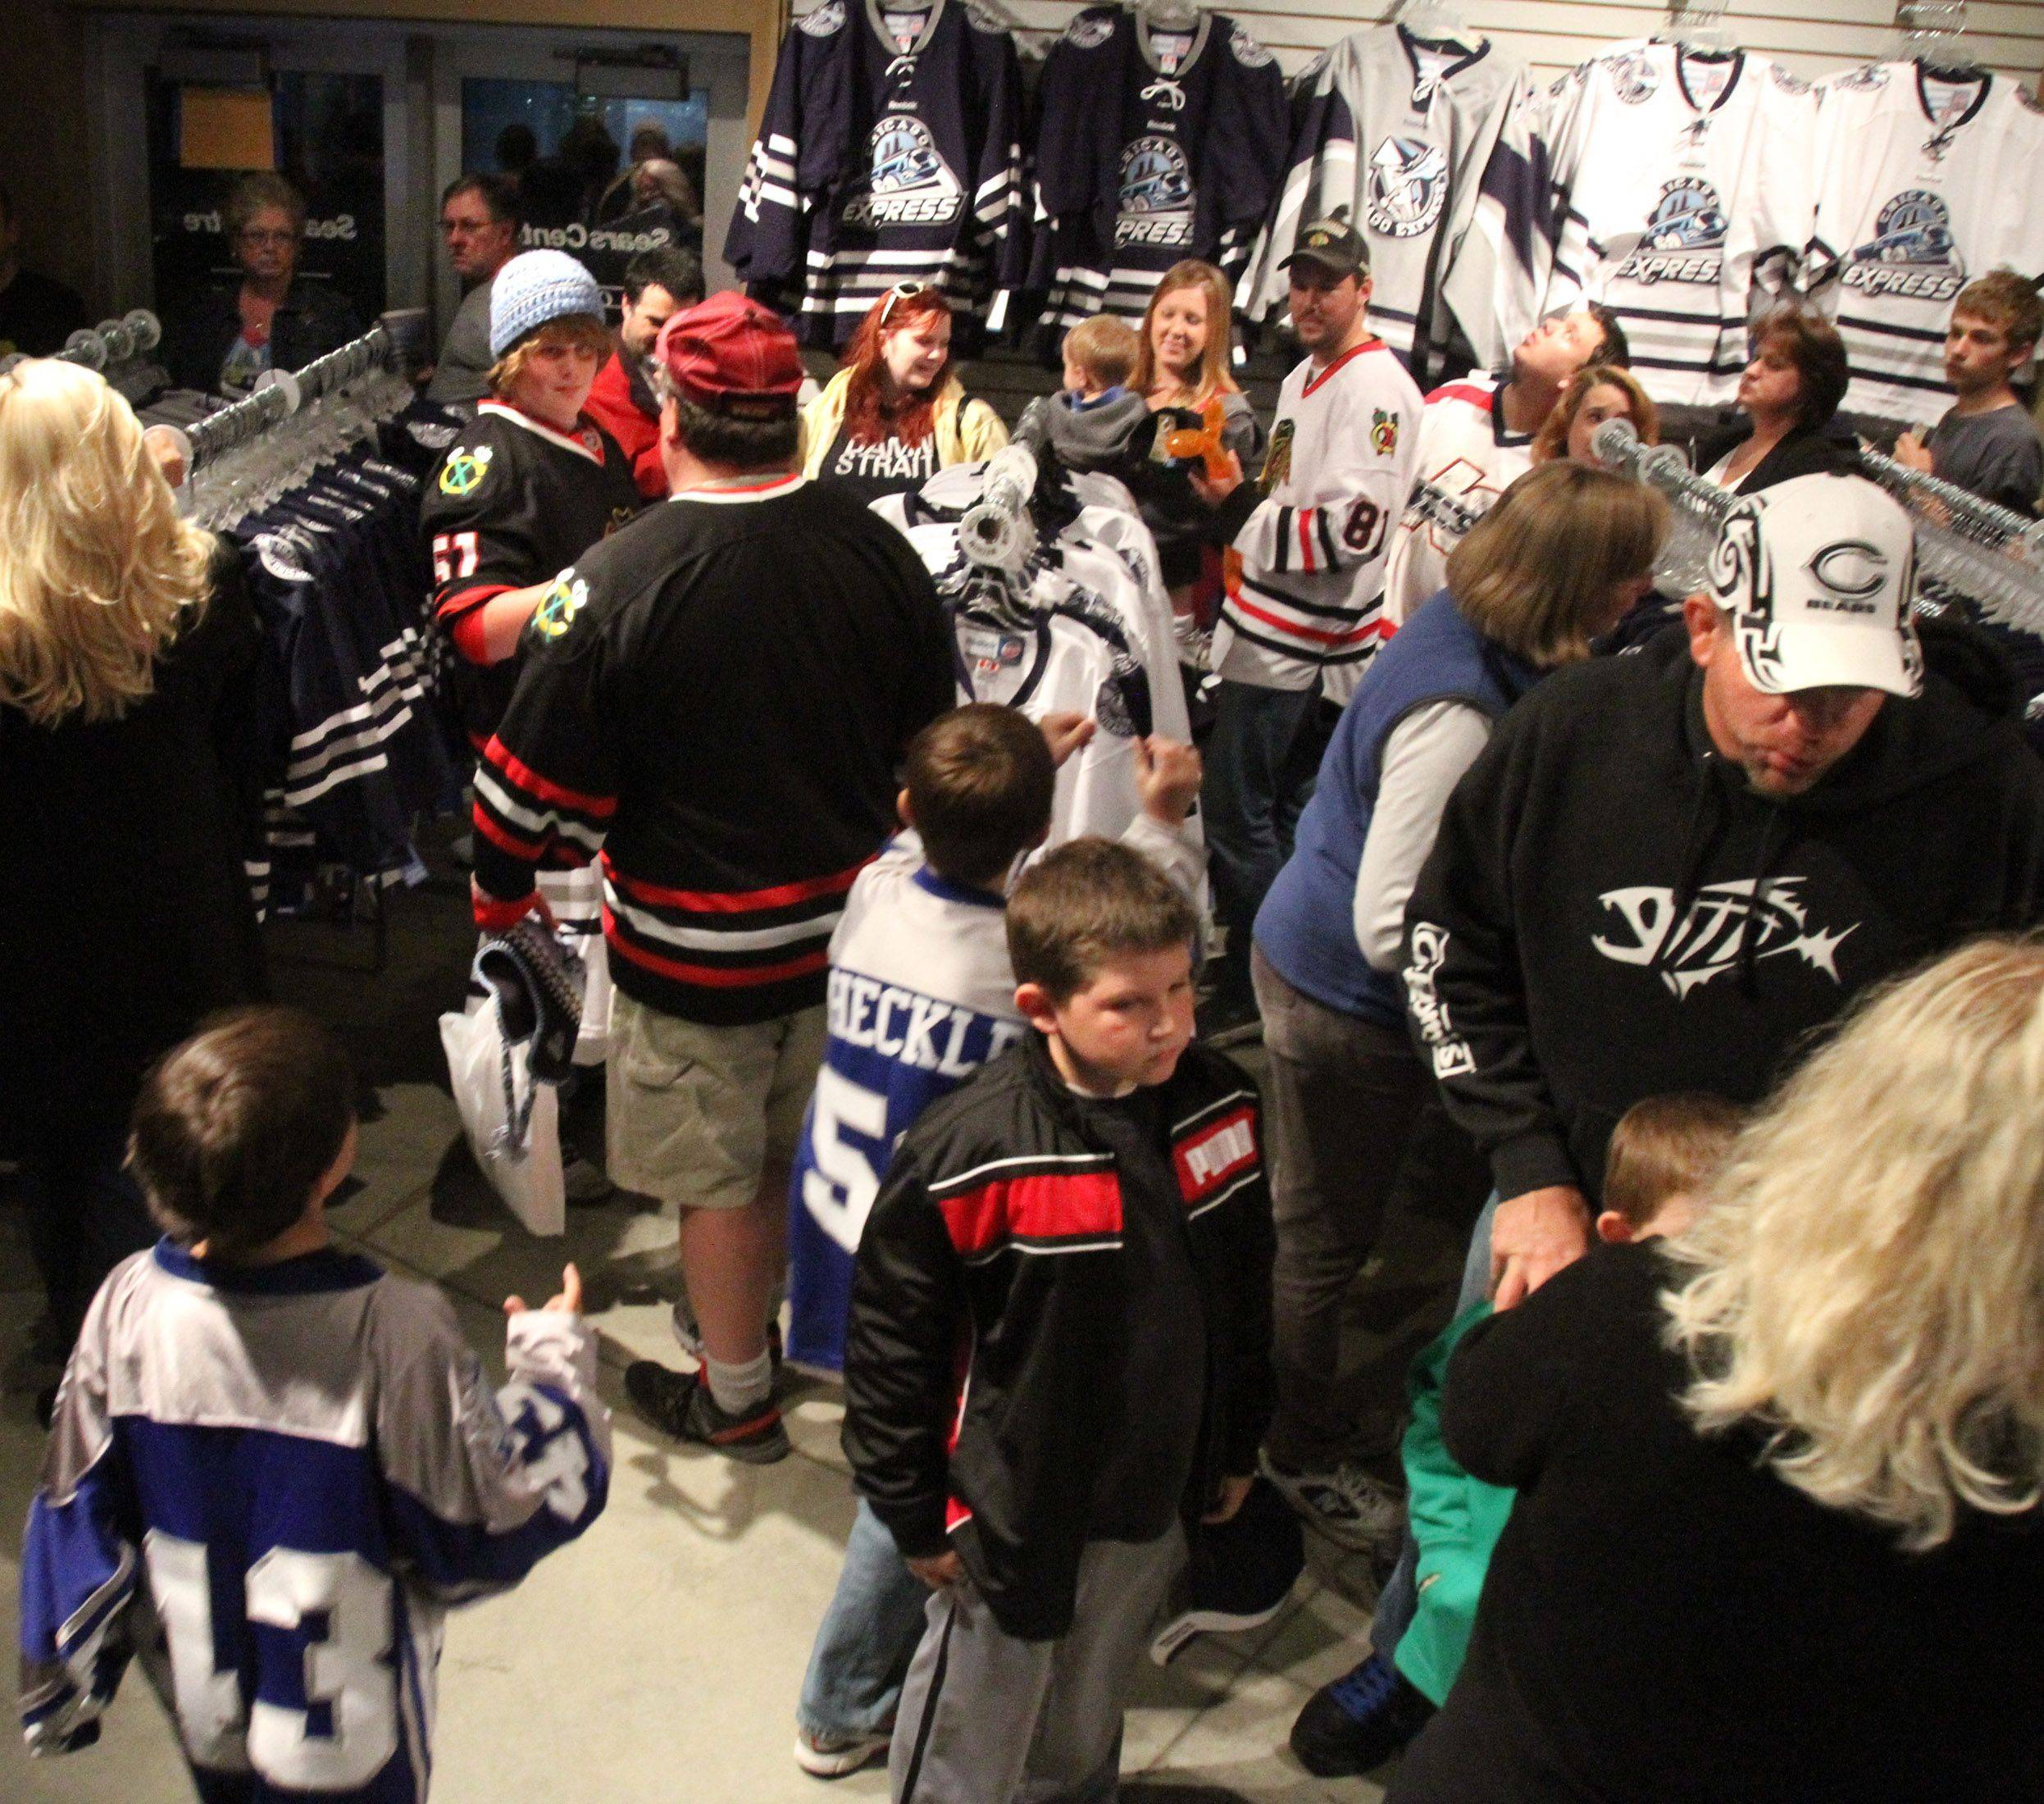 Chicago Express gift shop was crowded before the home opener against Kalamazoo Wings at the Sears Centre in Hoffman Estates on Saturday, October 22nd.